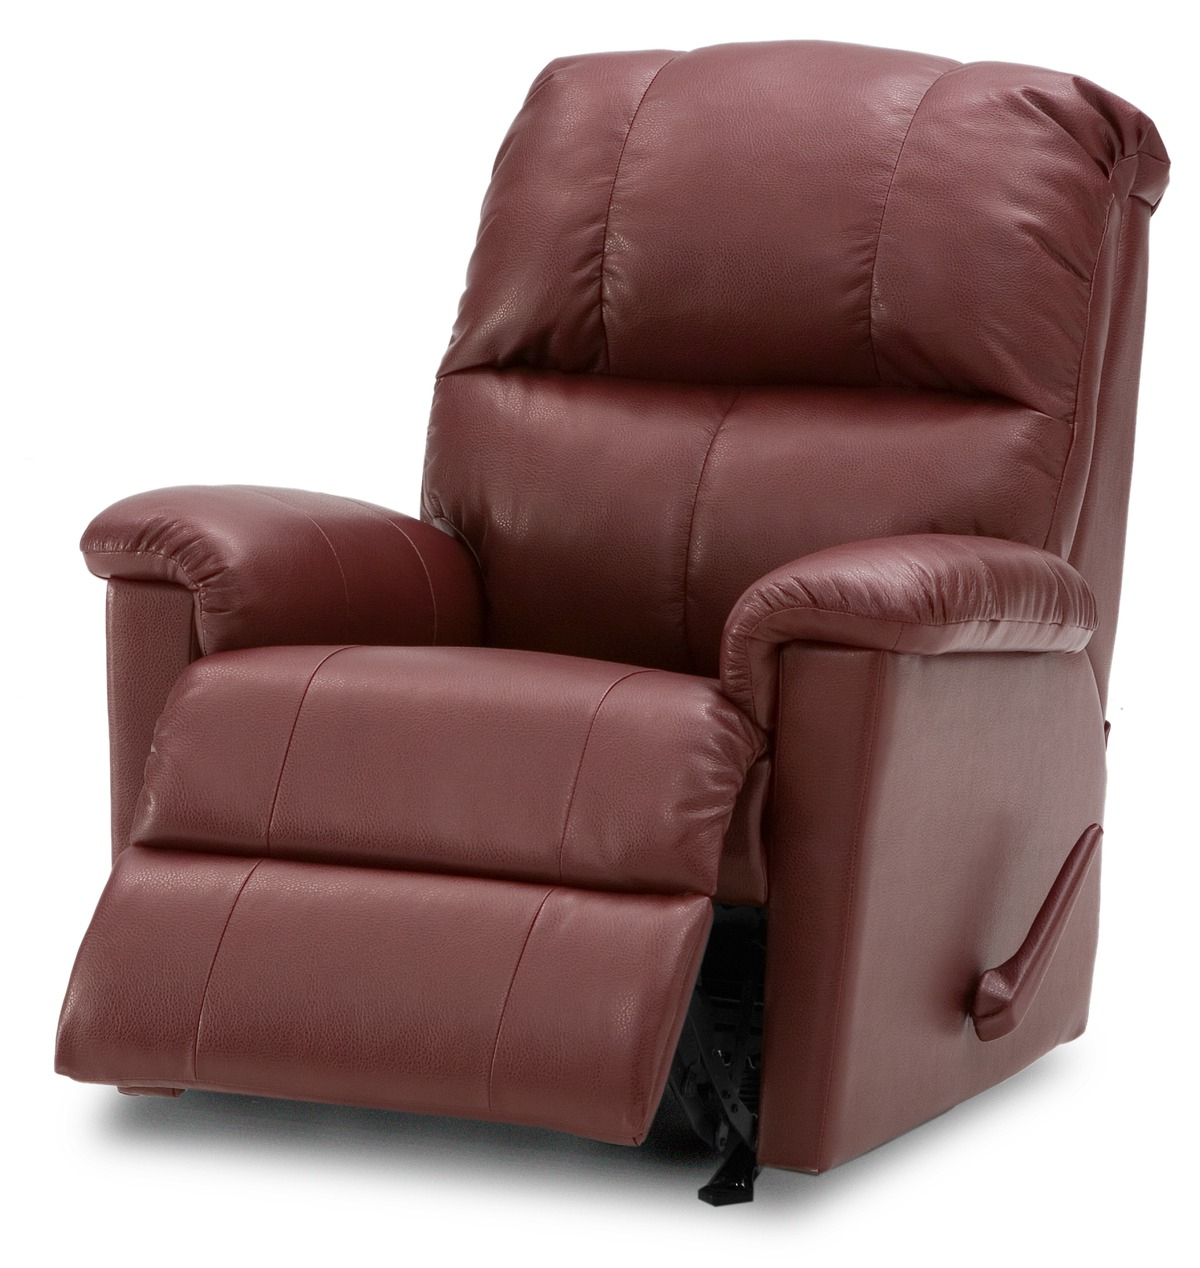 Most Current Palliser® Furniture Gilmore Swivel Rocker Recliner 43143 33 Inside Swivel Tobacco Leather Chairs (Gallery 19 of 20)